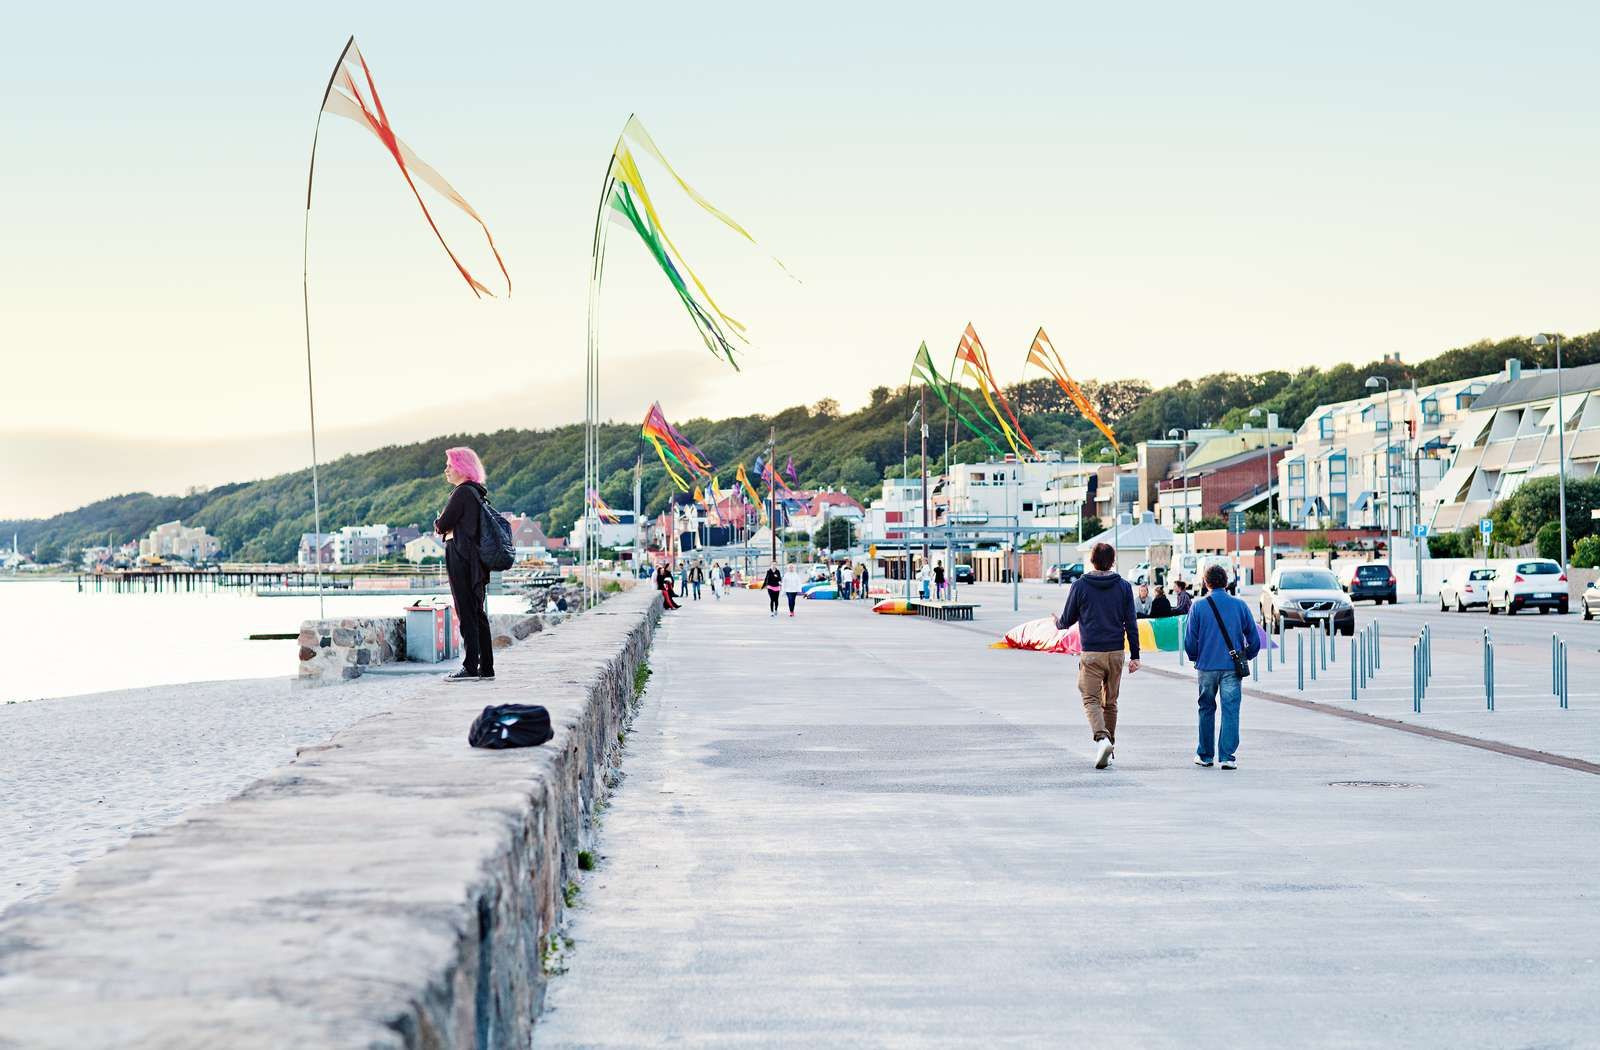 The seaside walking path Strandpromenaden to the north of the city centre is home to sandy beaches and colourful flags. Image credit - Anna Alexander Olsson